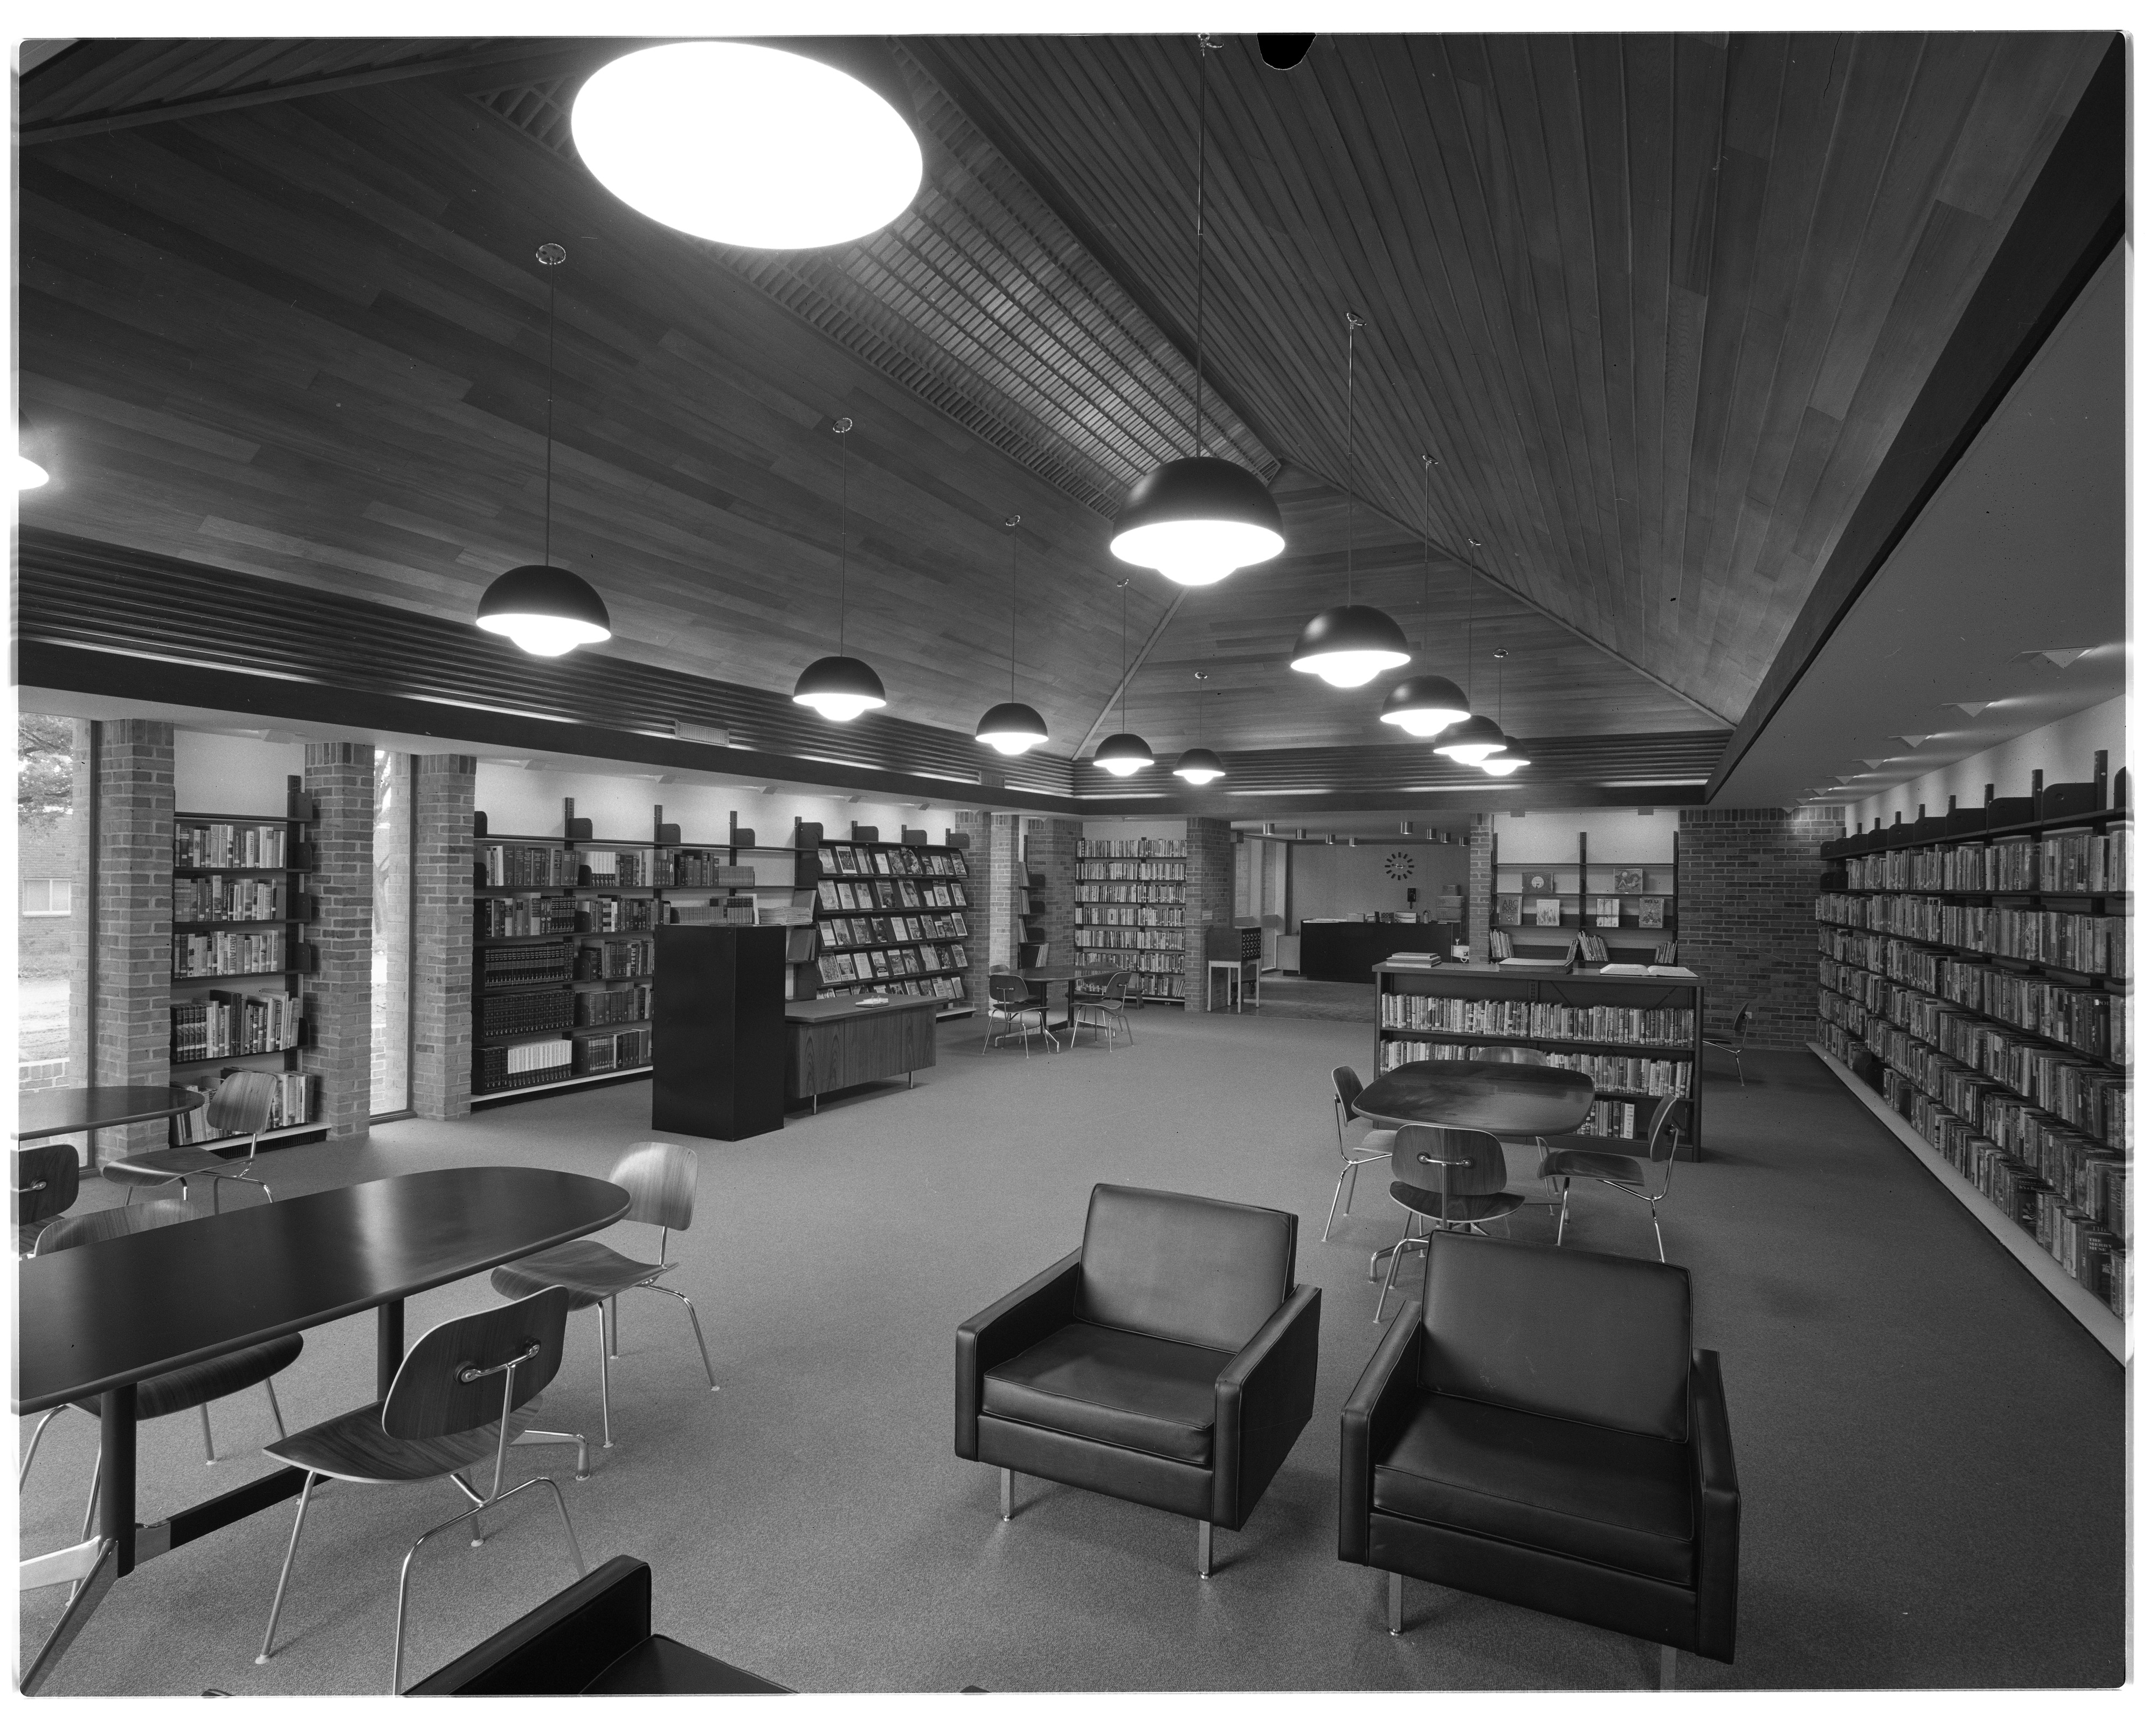 New Nellie S. Loving Branch Library Interior, 3042 Creek Drive, September 1965 image